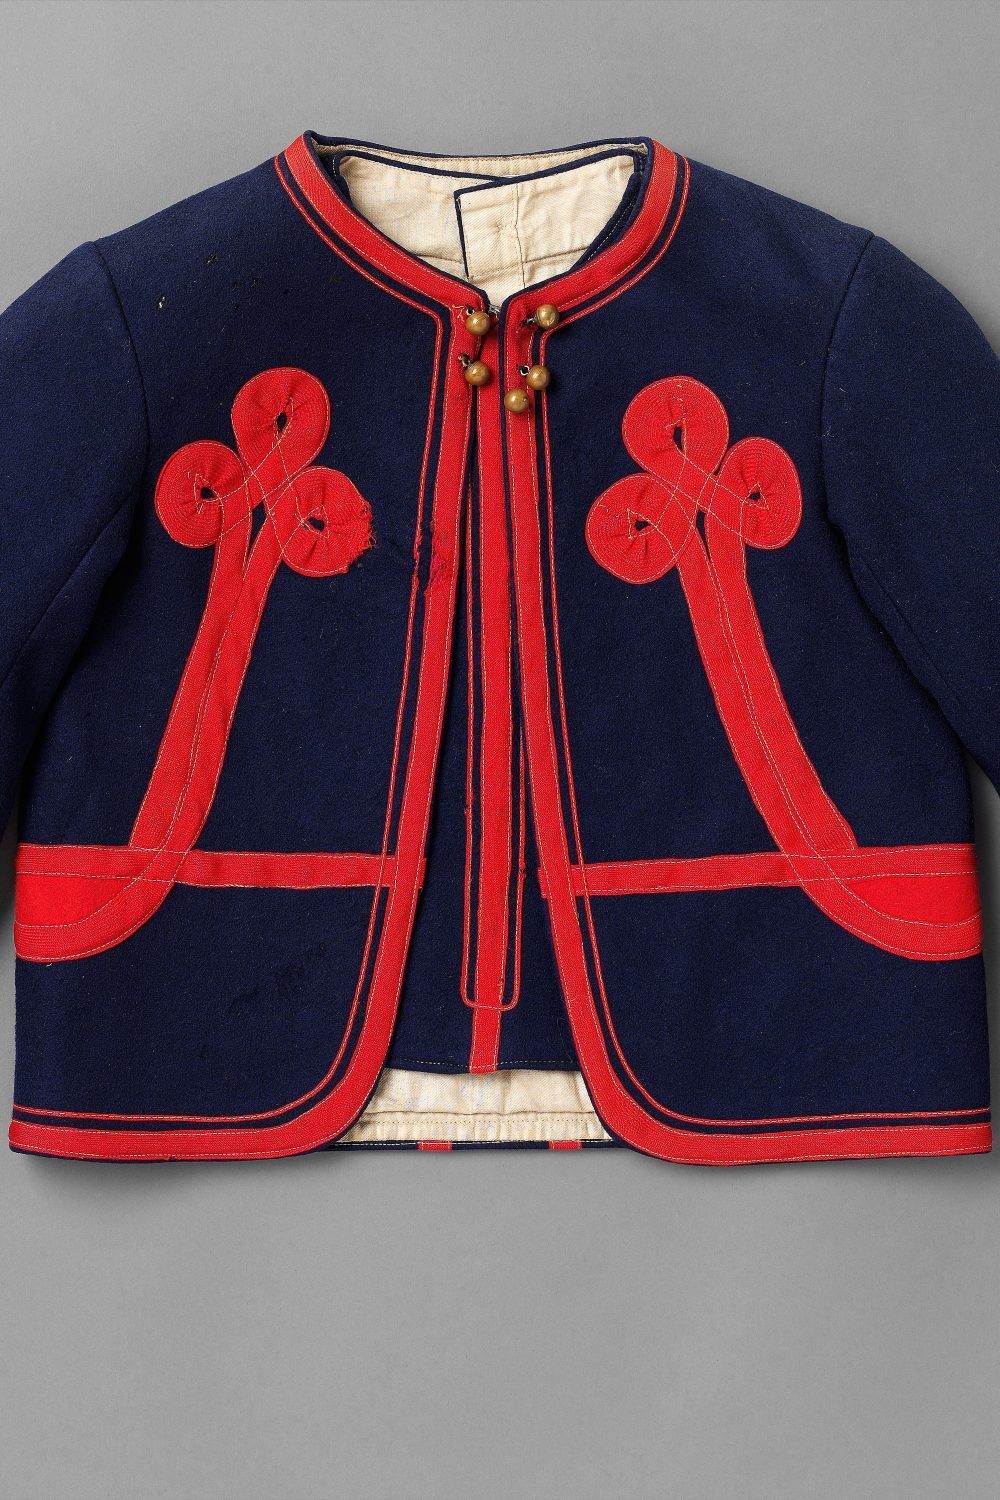 Child's Jacket and Underbodice